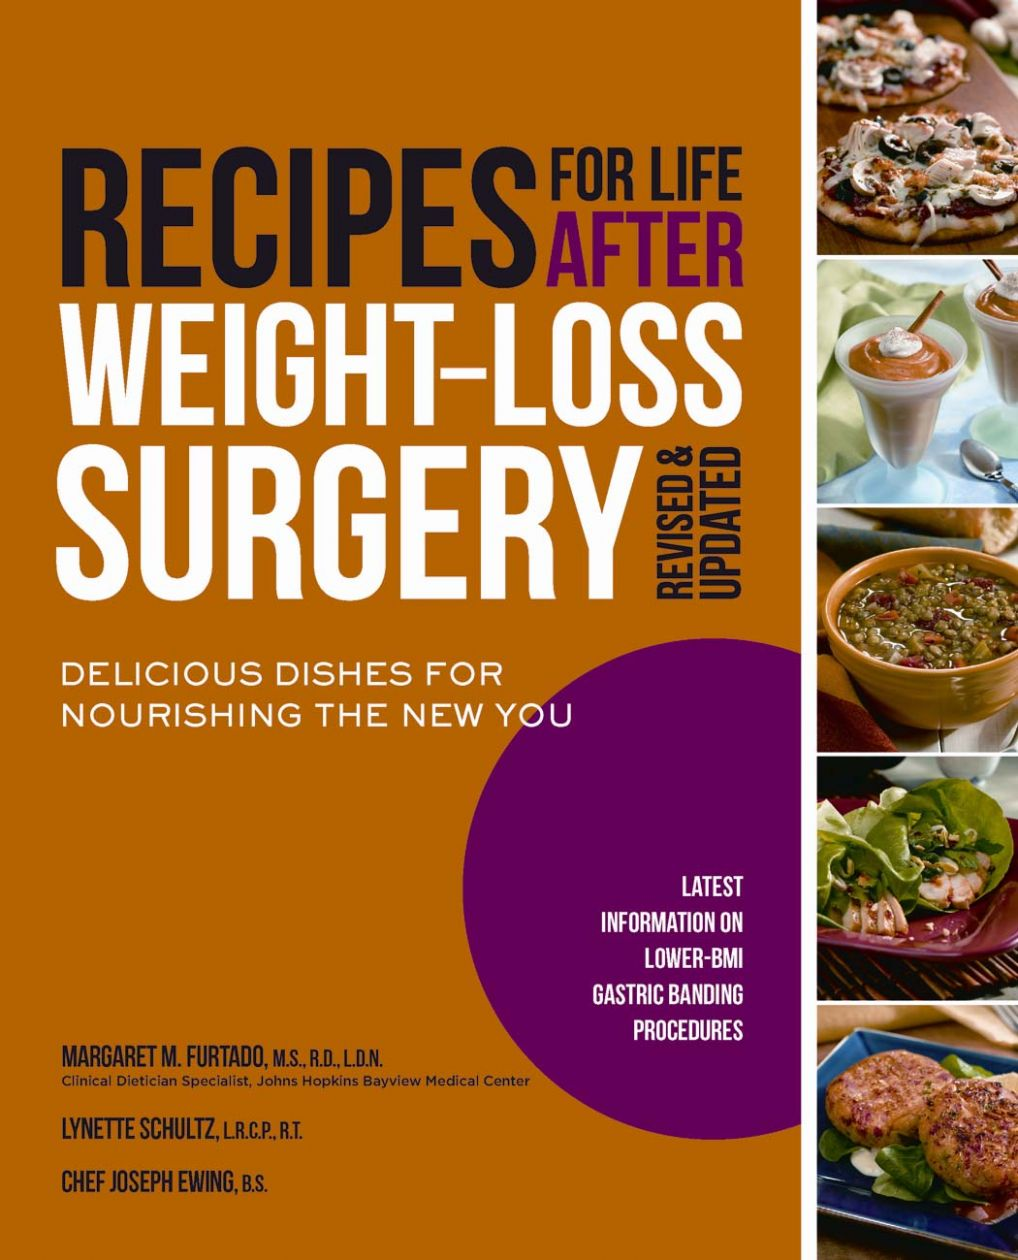 Recipes for Life After Weight-Loss Surgery - Recipes For Weight Loss Surgery